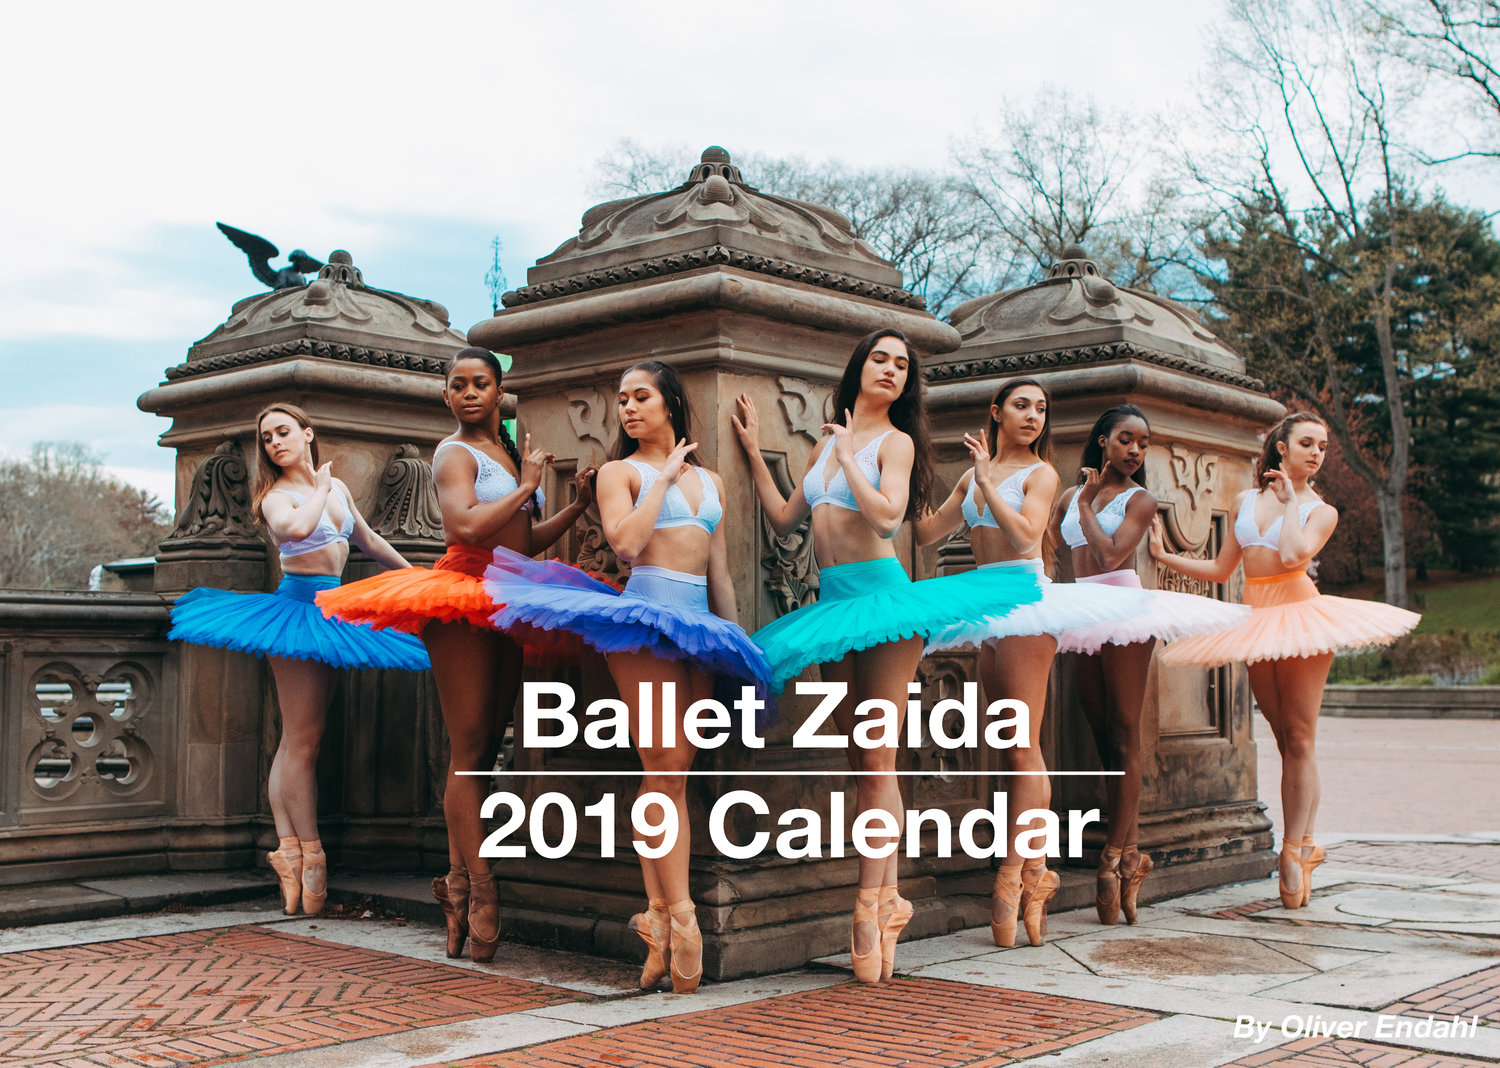 Ballet Zaida 2019 Calendar - Ballet Zaida is an ongoing fine art project created by former ballet dancer, Oliver Endahl. Follow along on Instagram @balletzaida